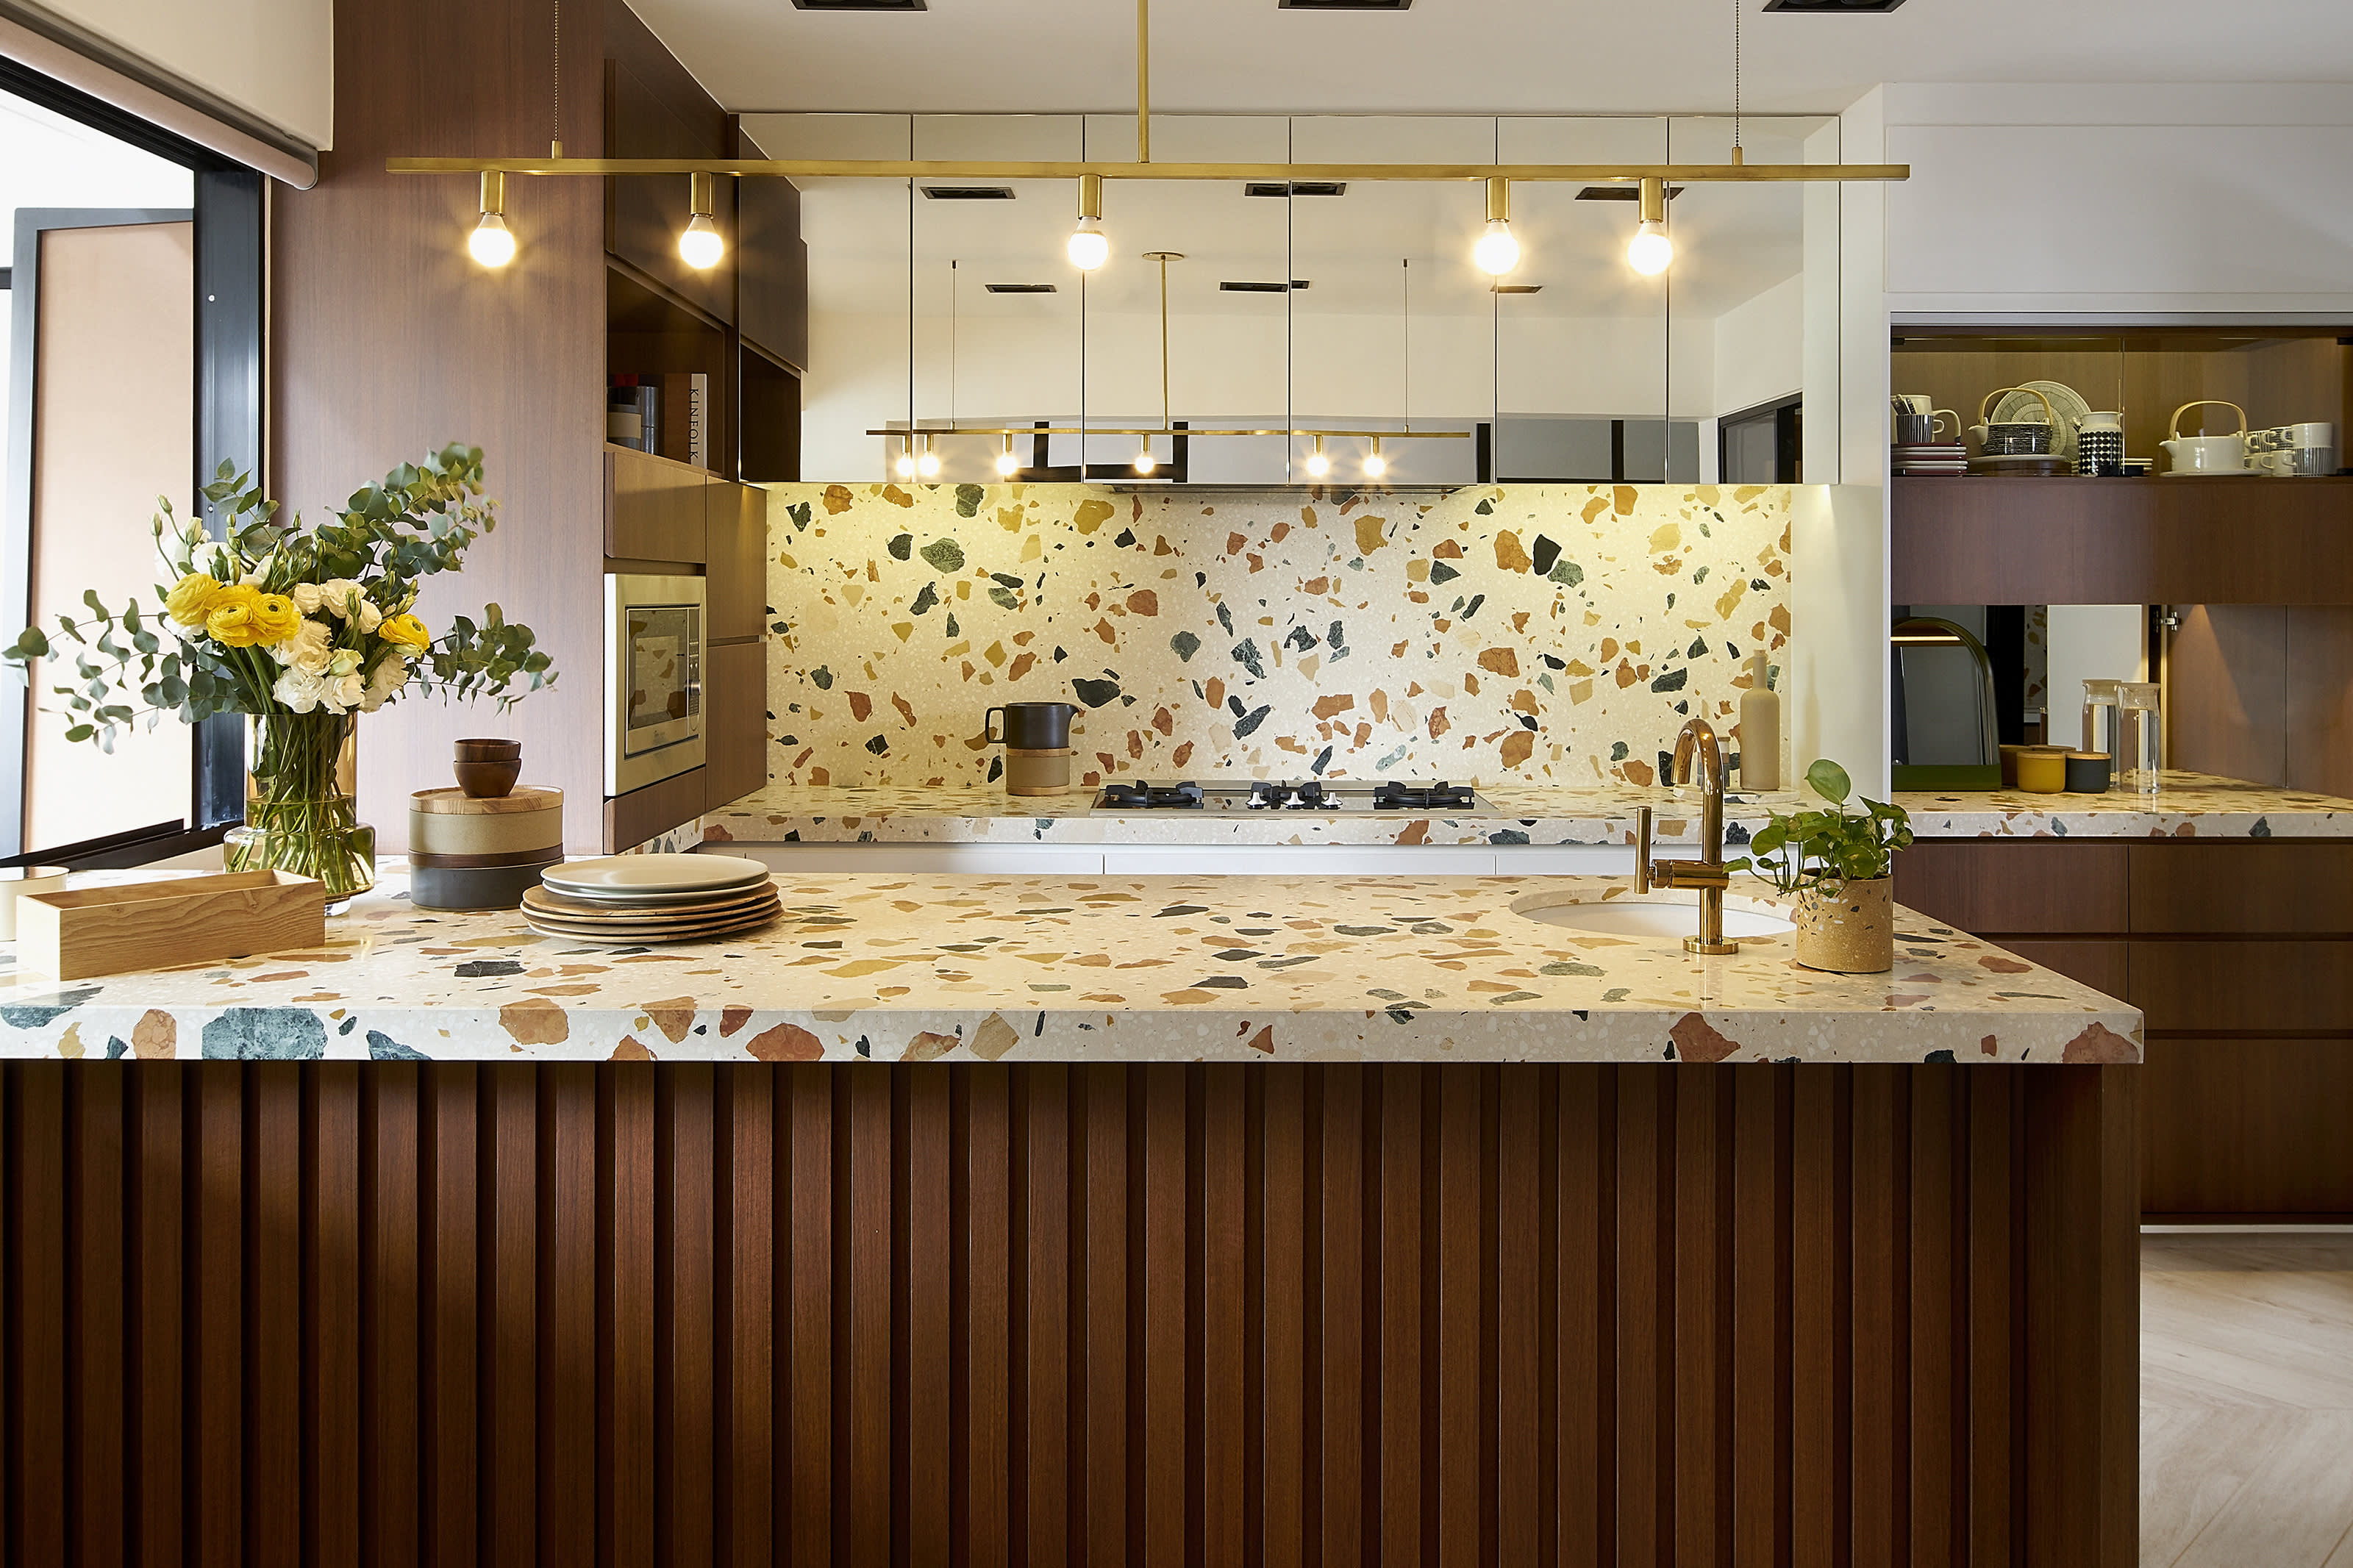 Lizah Rahman Kitchen Singapore tile crop